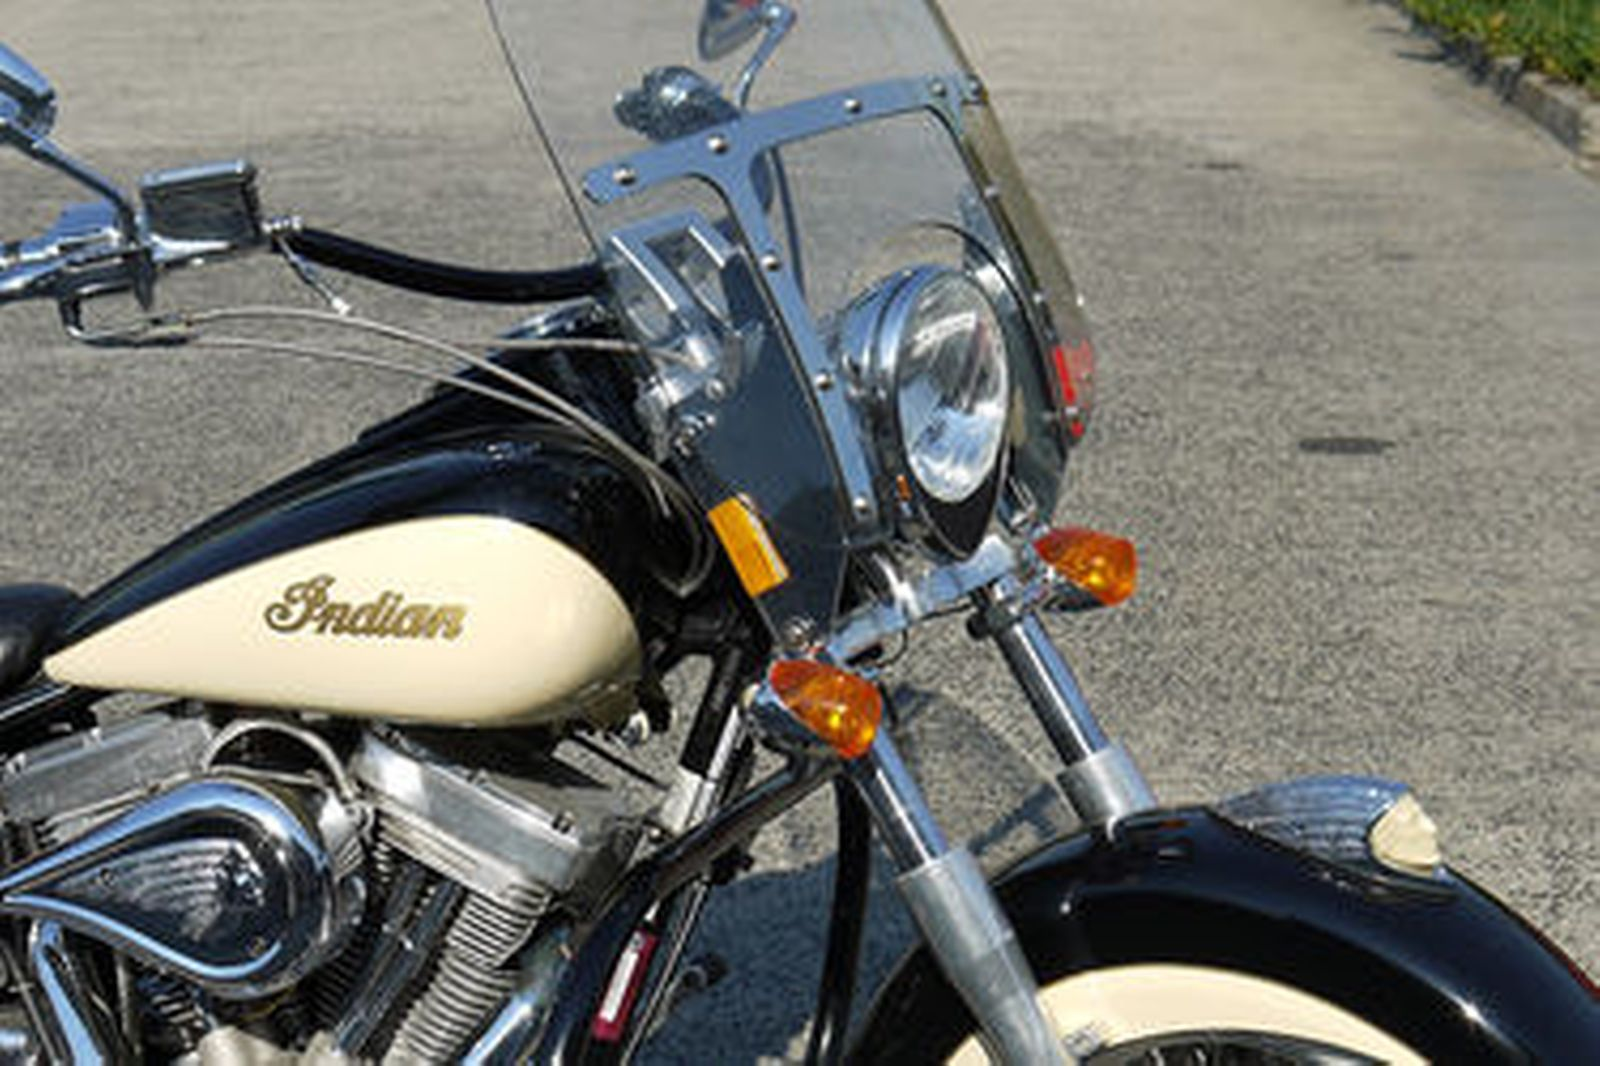 Indian Sprint Chief 88ci Motorcycle